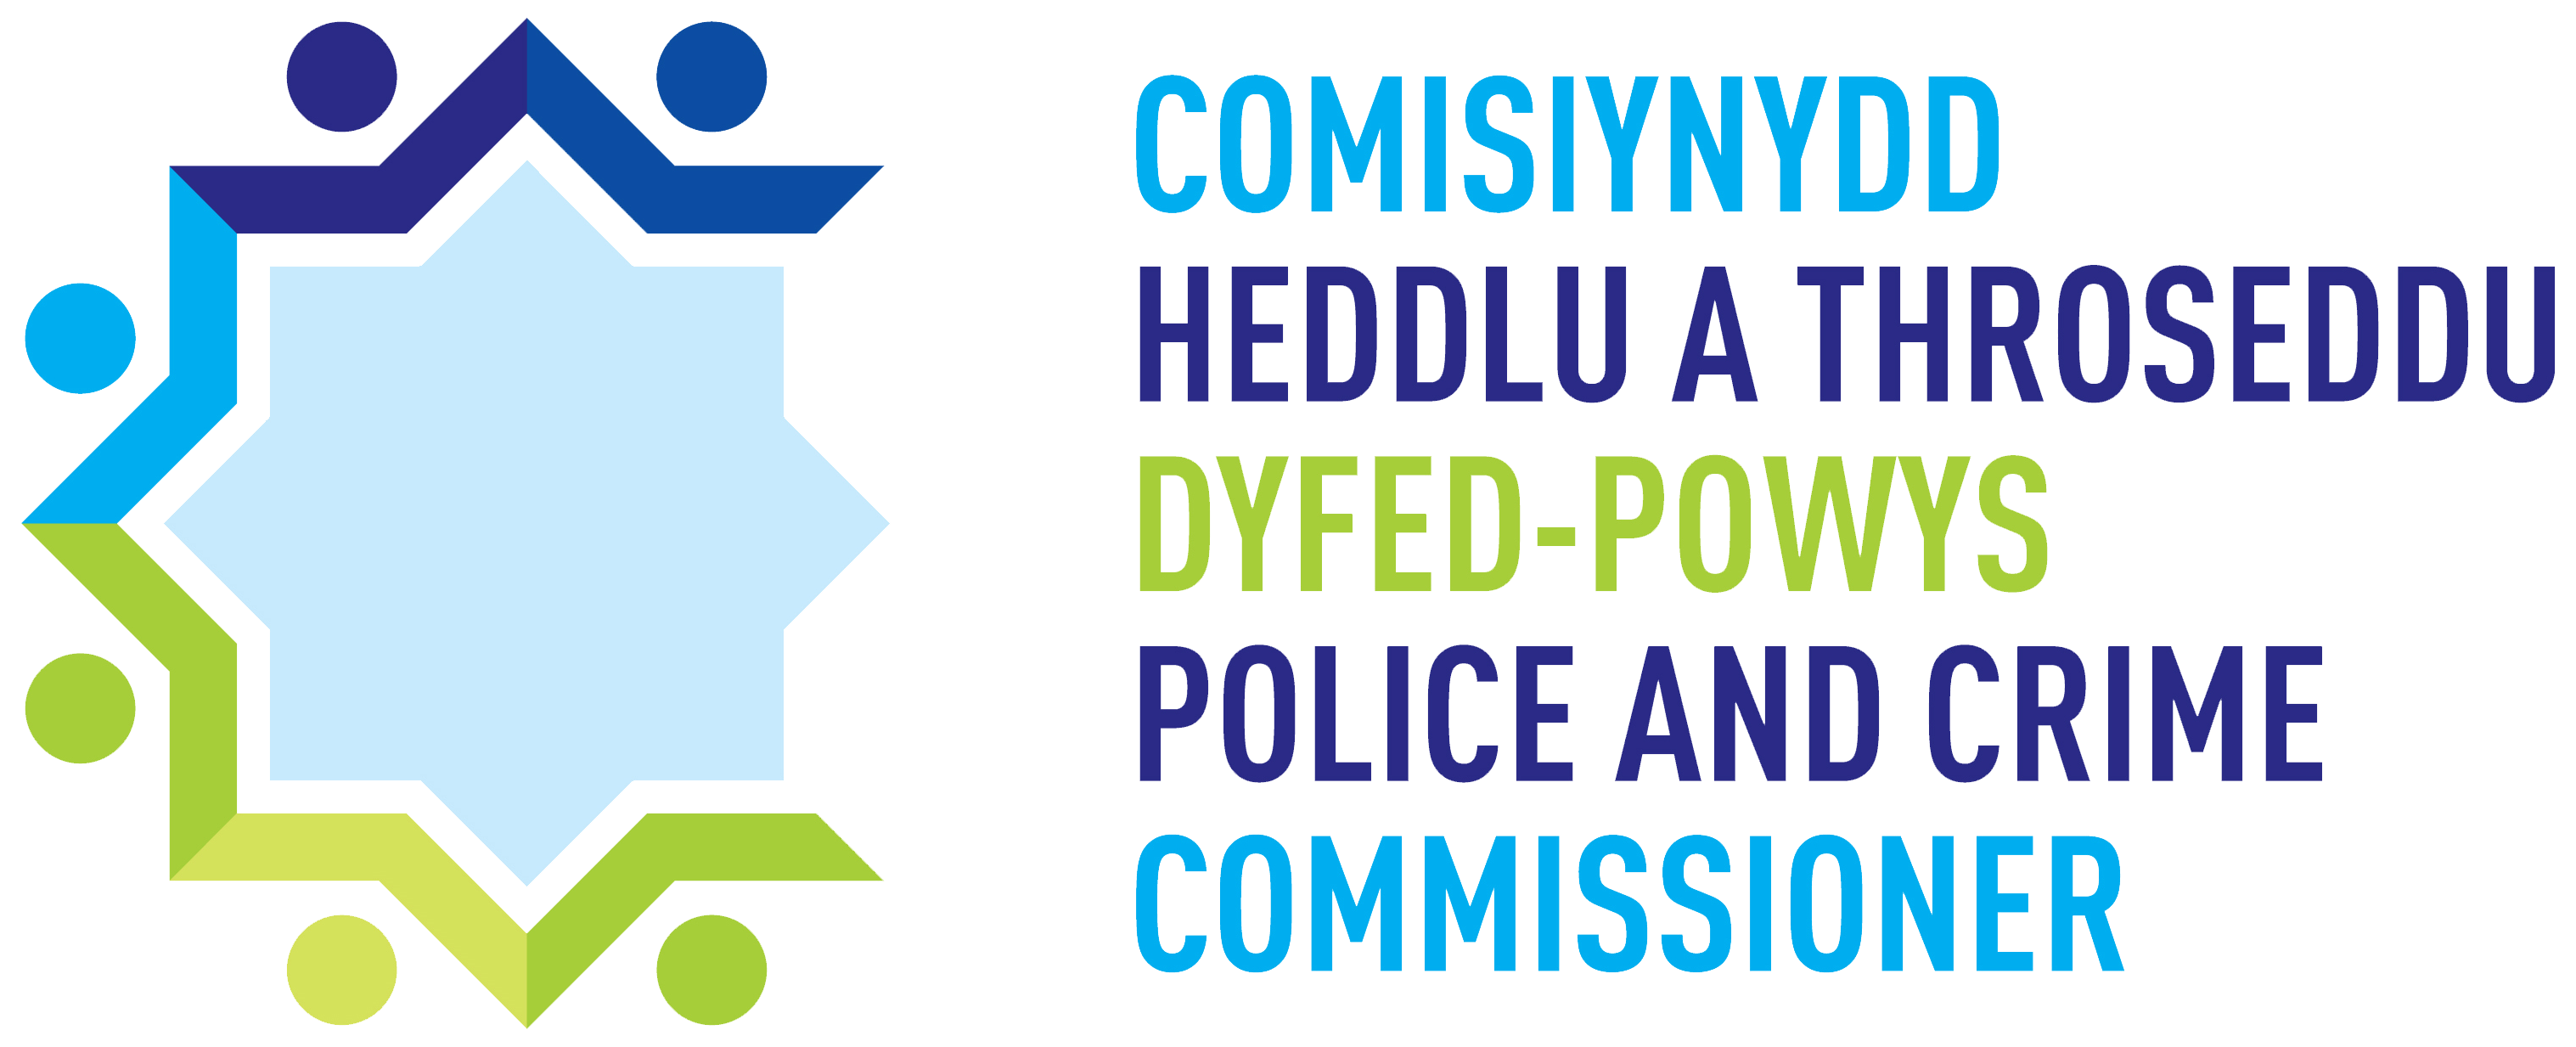 OPCC Master Logo High Res(transparent background)Com Heddlu Dyfed Powys